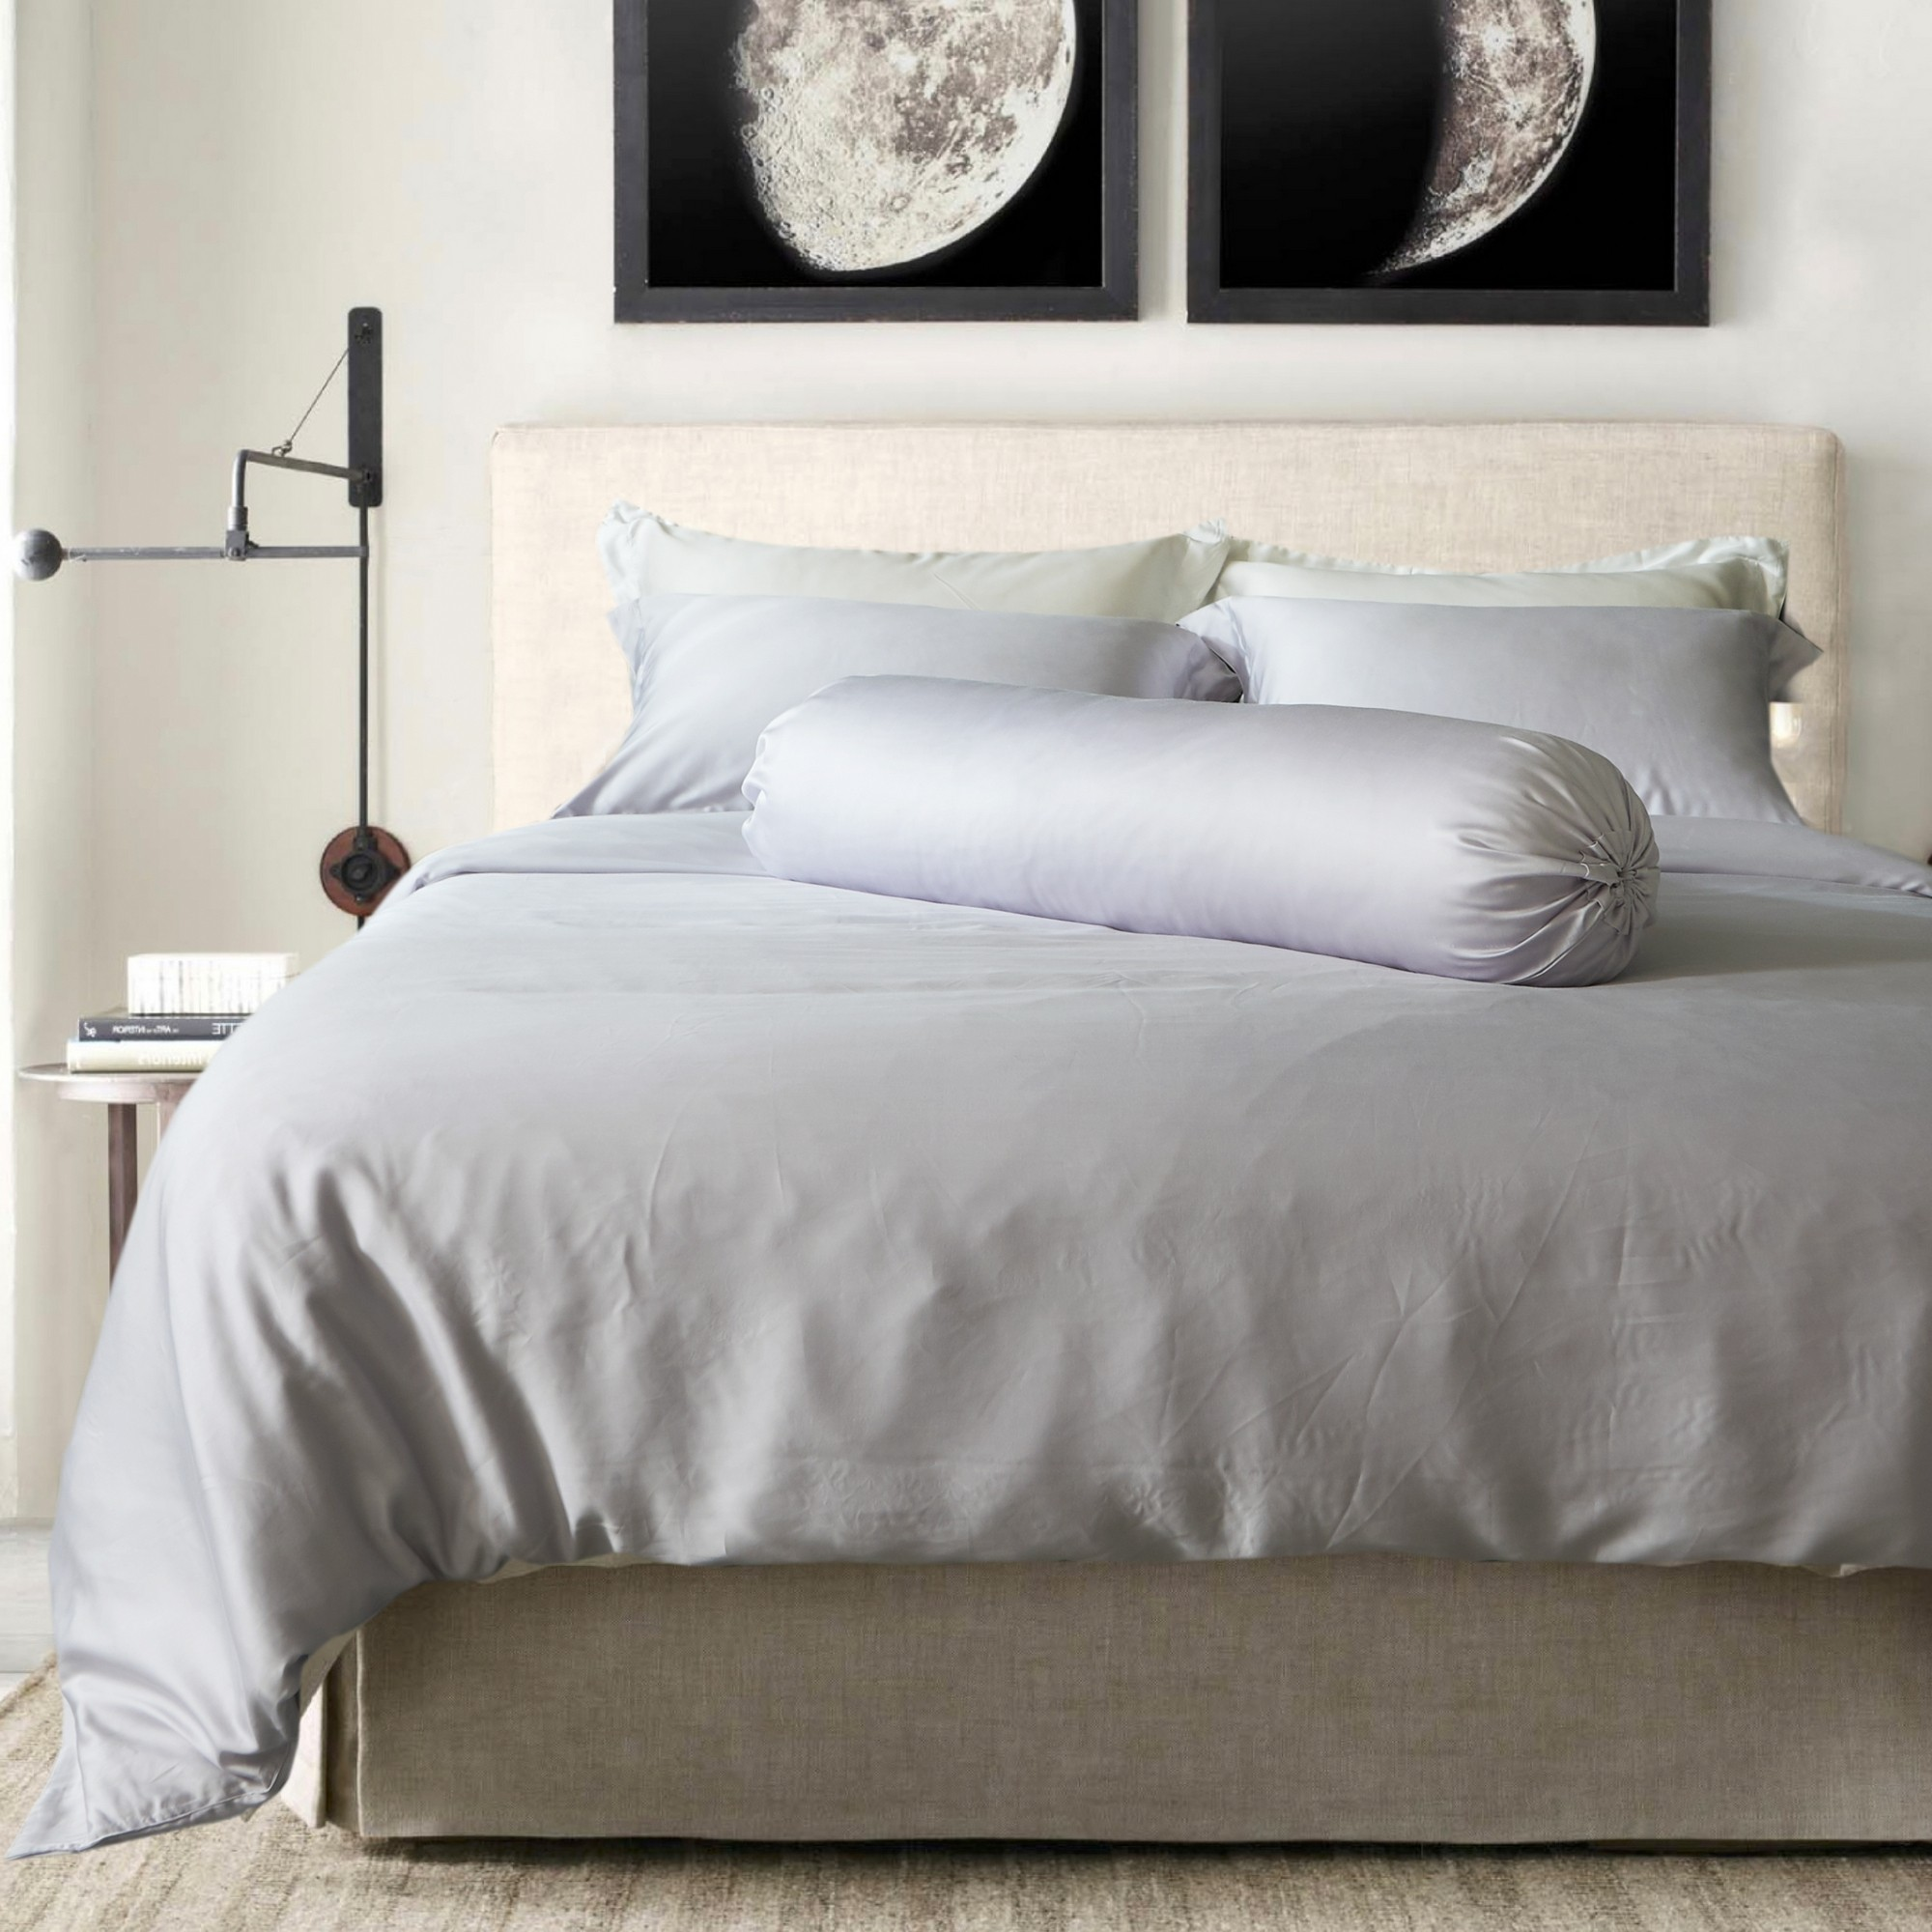 size grey flannelette duvet pin set cover innsbruck dream king